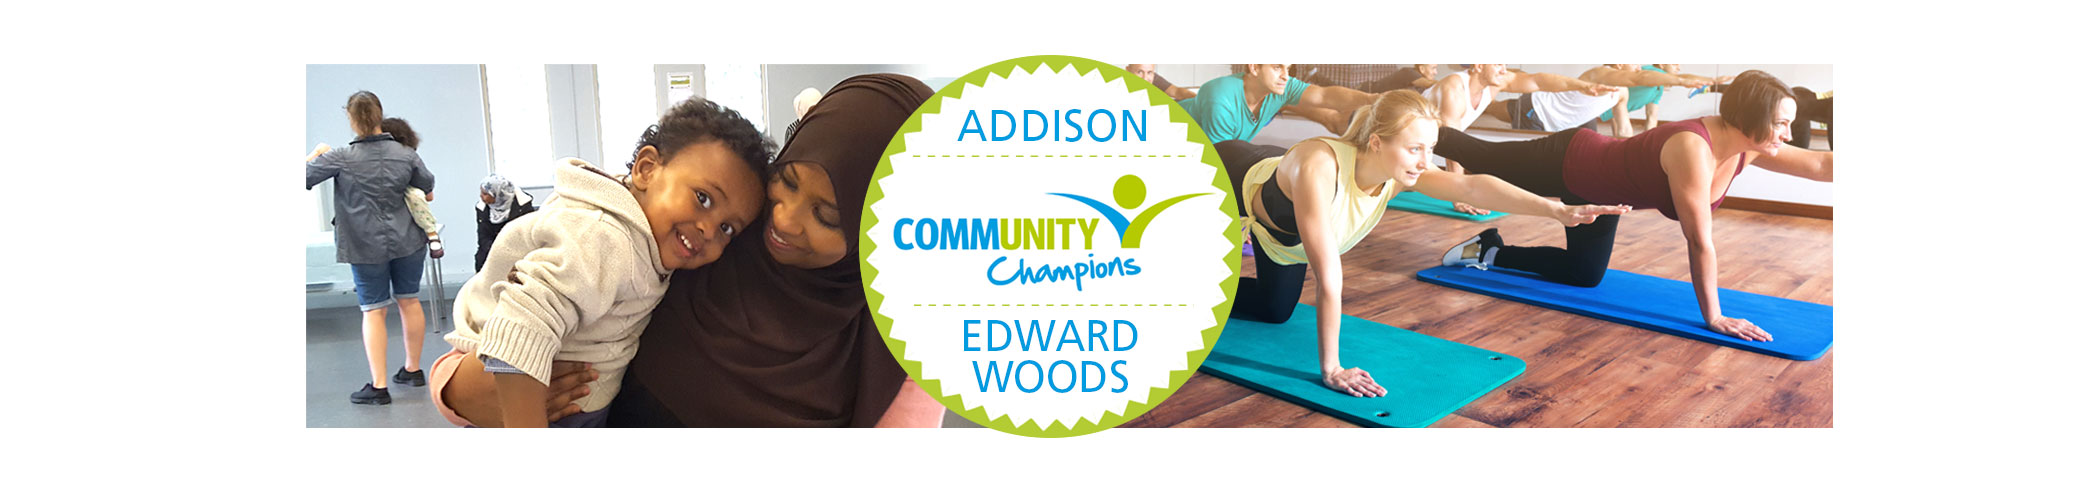 Addison and Edward Woods Community Champions page iphone banner